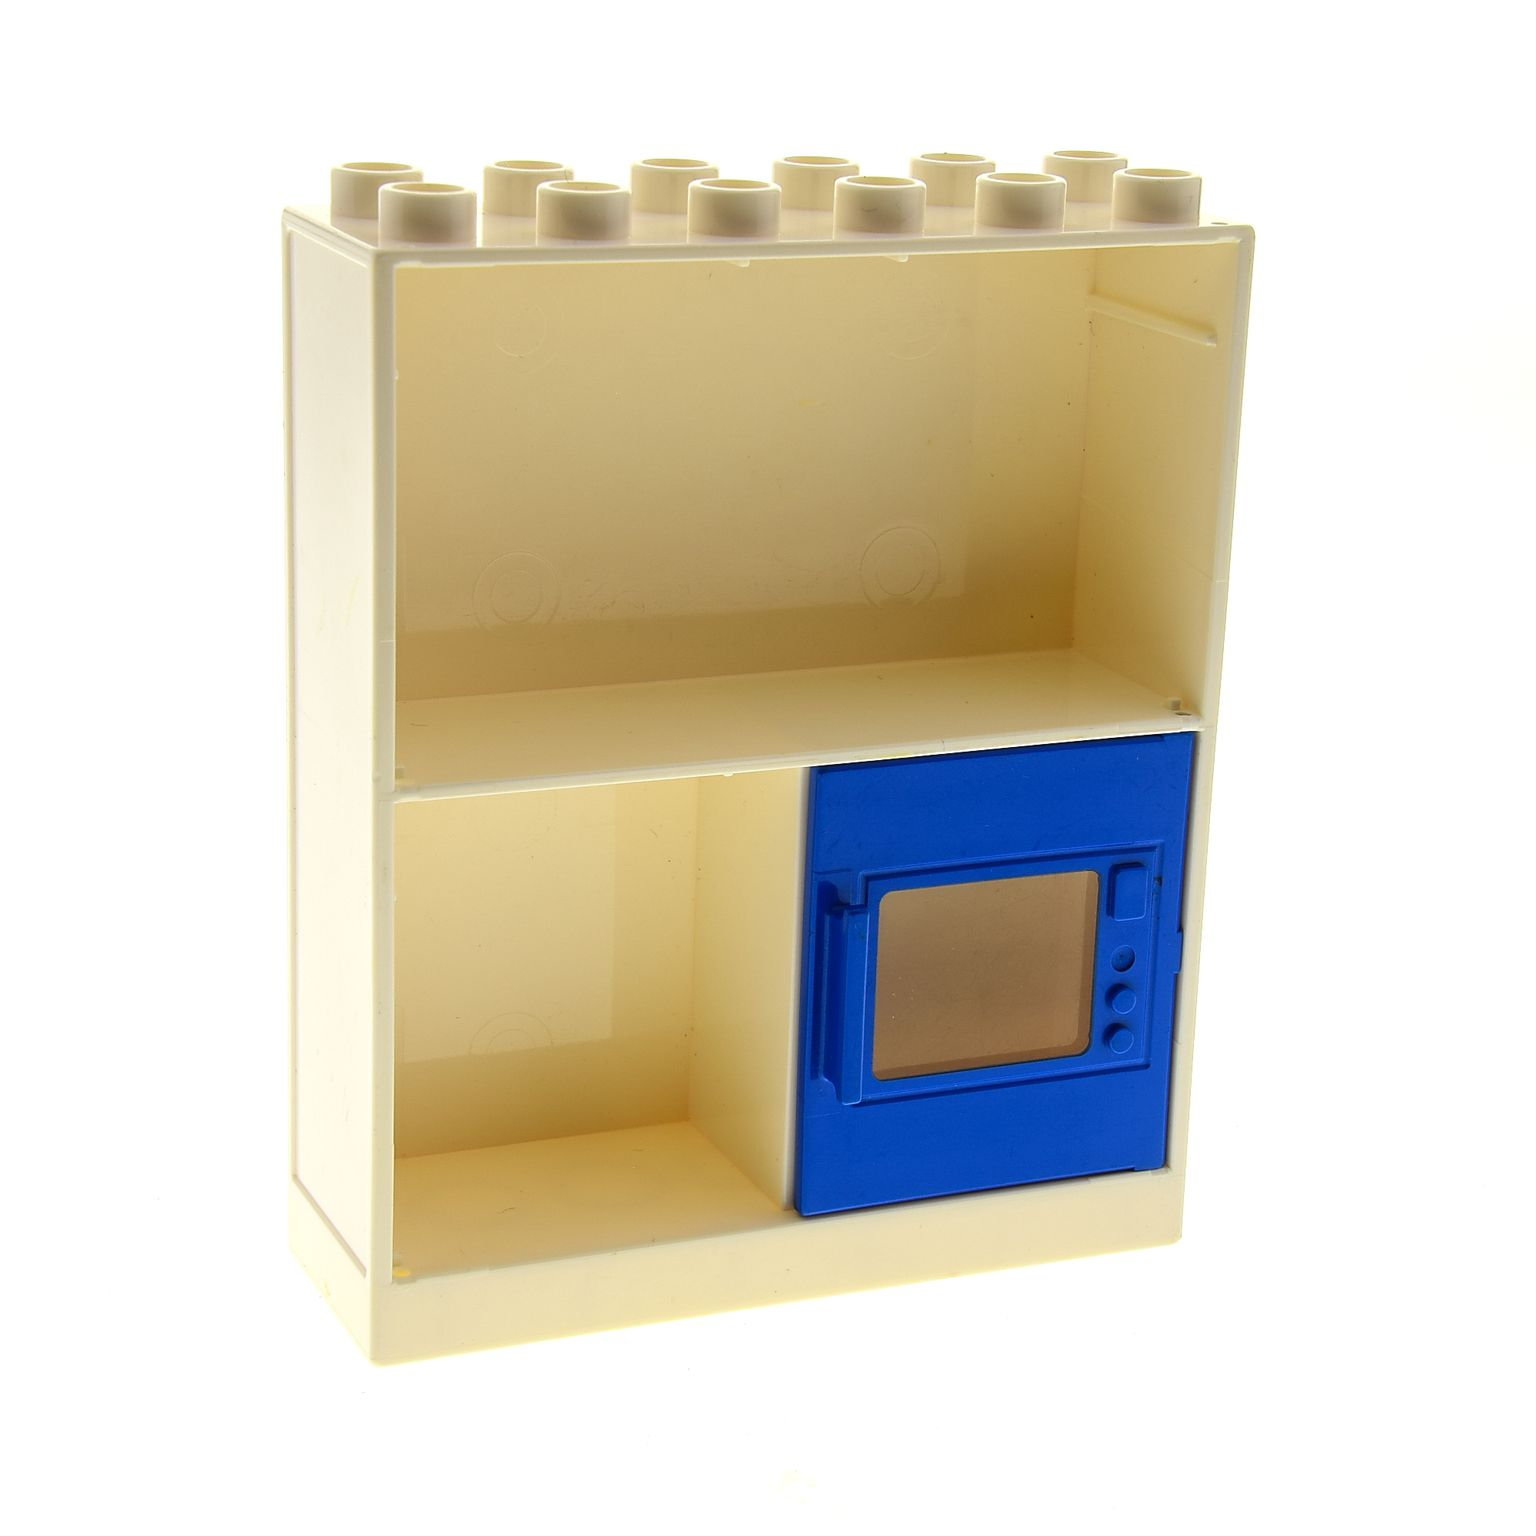 1 x lego duplo m bel schrank regal wand creme weiss 2x6x6 mit 3 f chern mit ofen t r blau. Black Bedroom Furniture Sets. Home Design Ideas